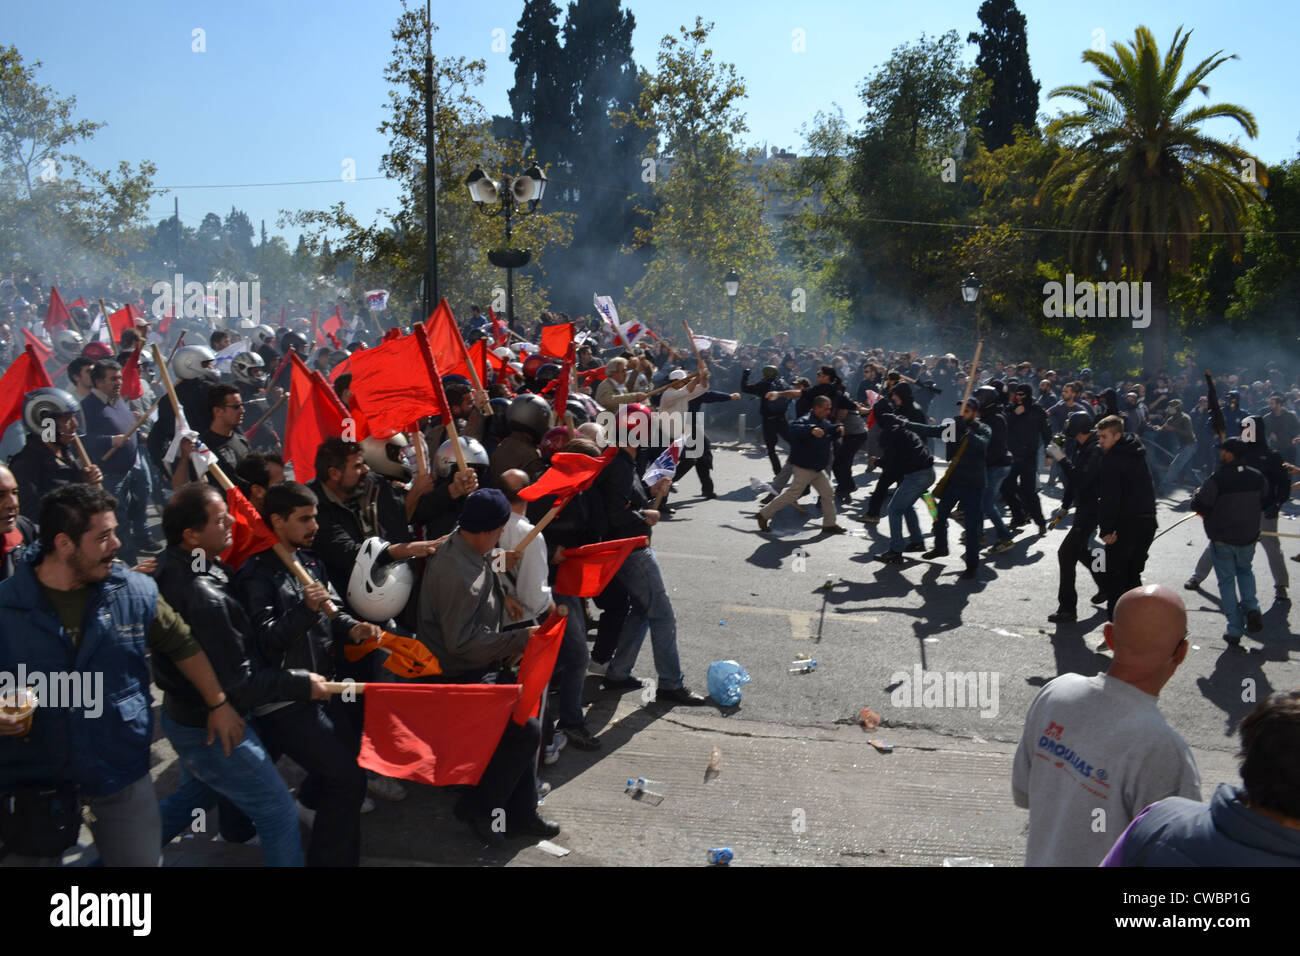 Anarchists clash with communists during a general anti-austerity strike in Athens. - Stock Image